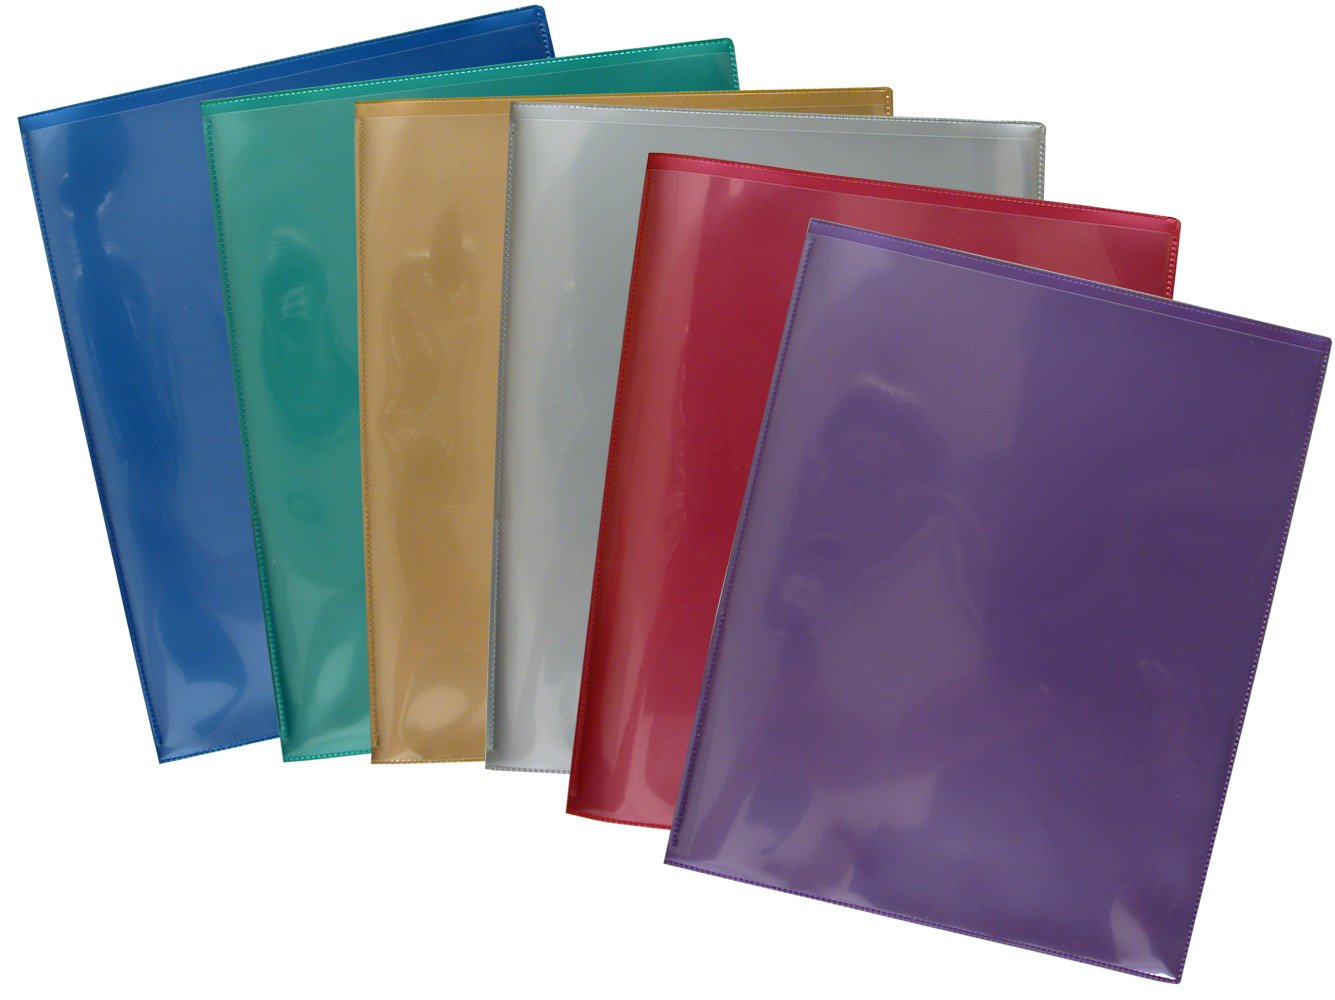 StoreSMART - Metallic Colors - 30-pack: 5 of each color - Plastic Archival Twin Pocket Folders - For Business, School, & Home - R900MCP30